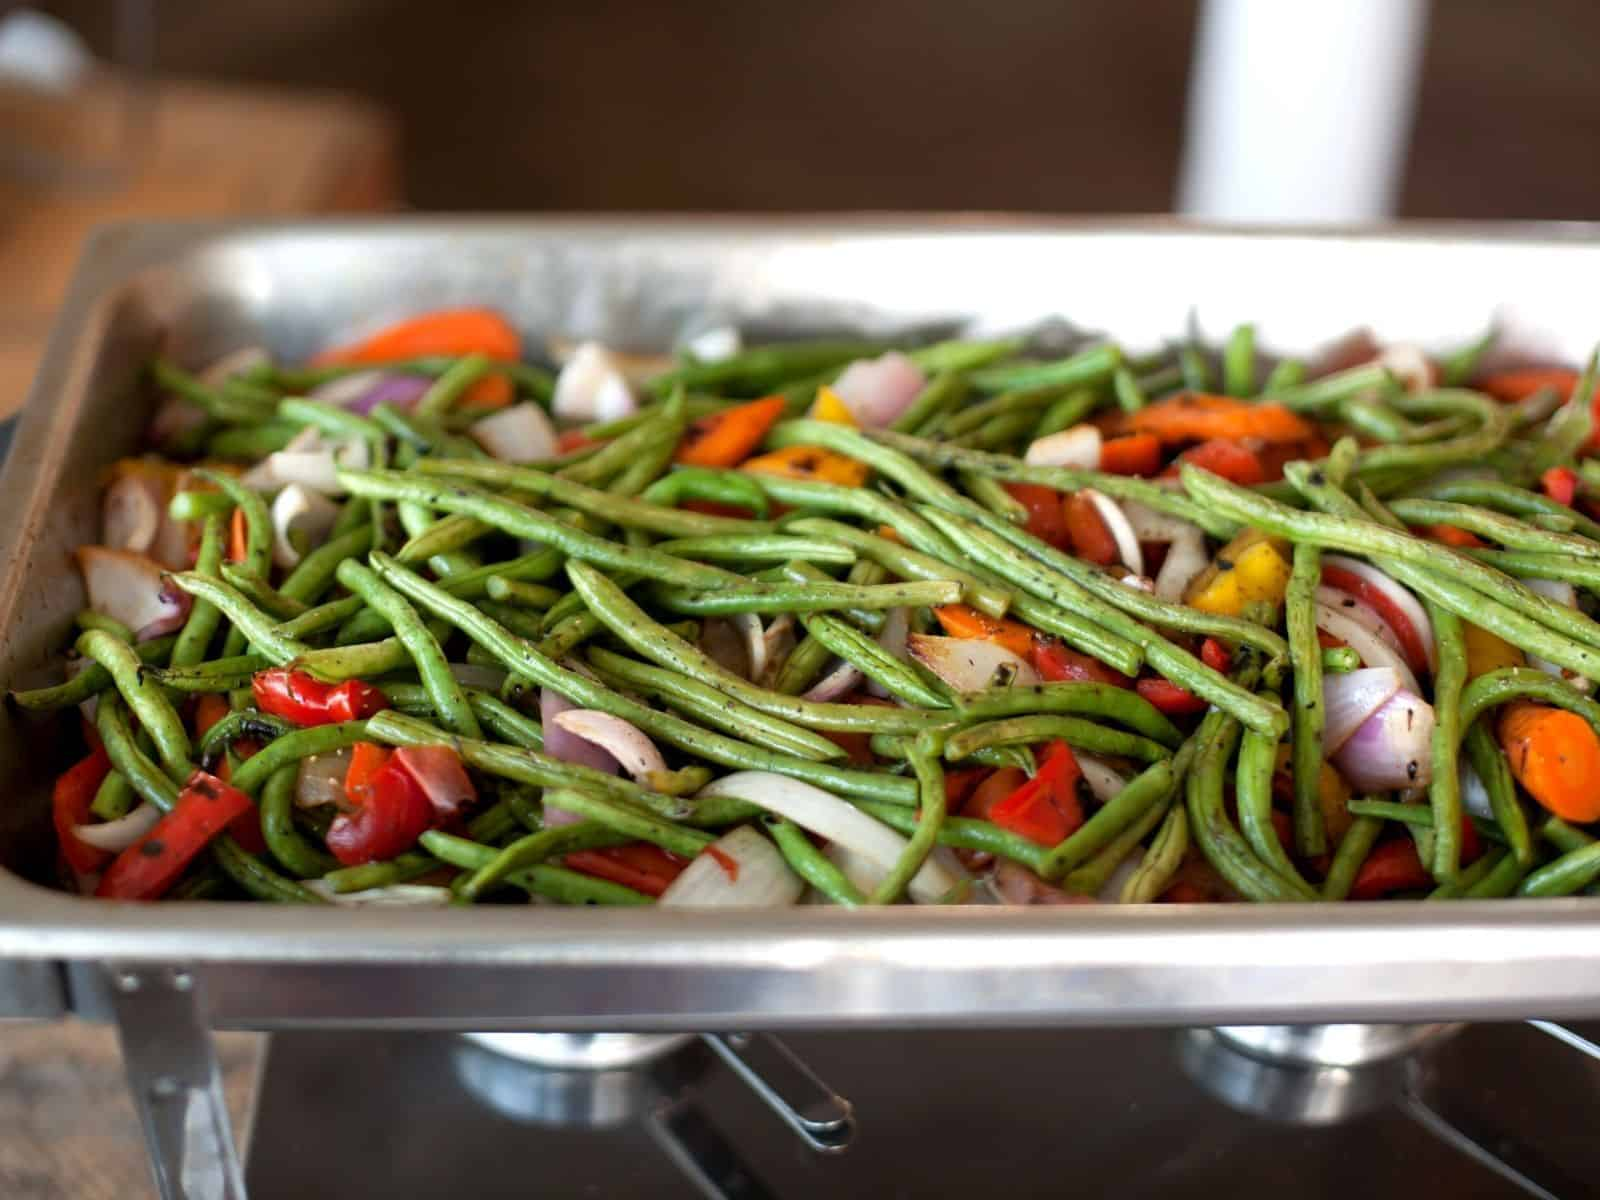 chafing dish with green beans and veggies.